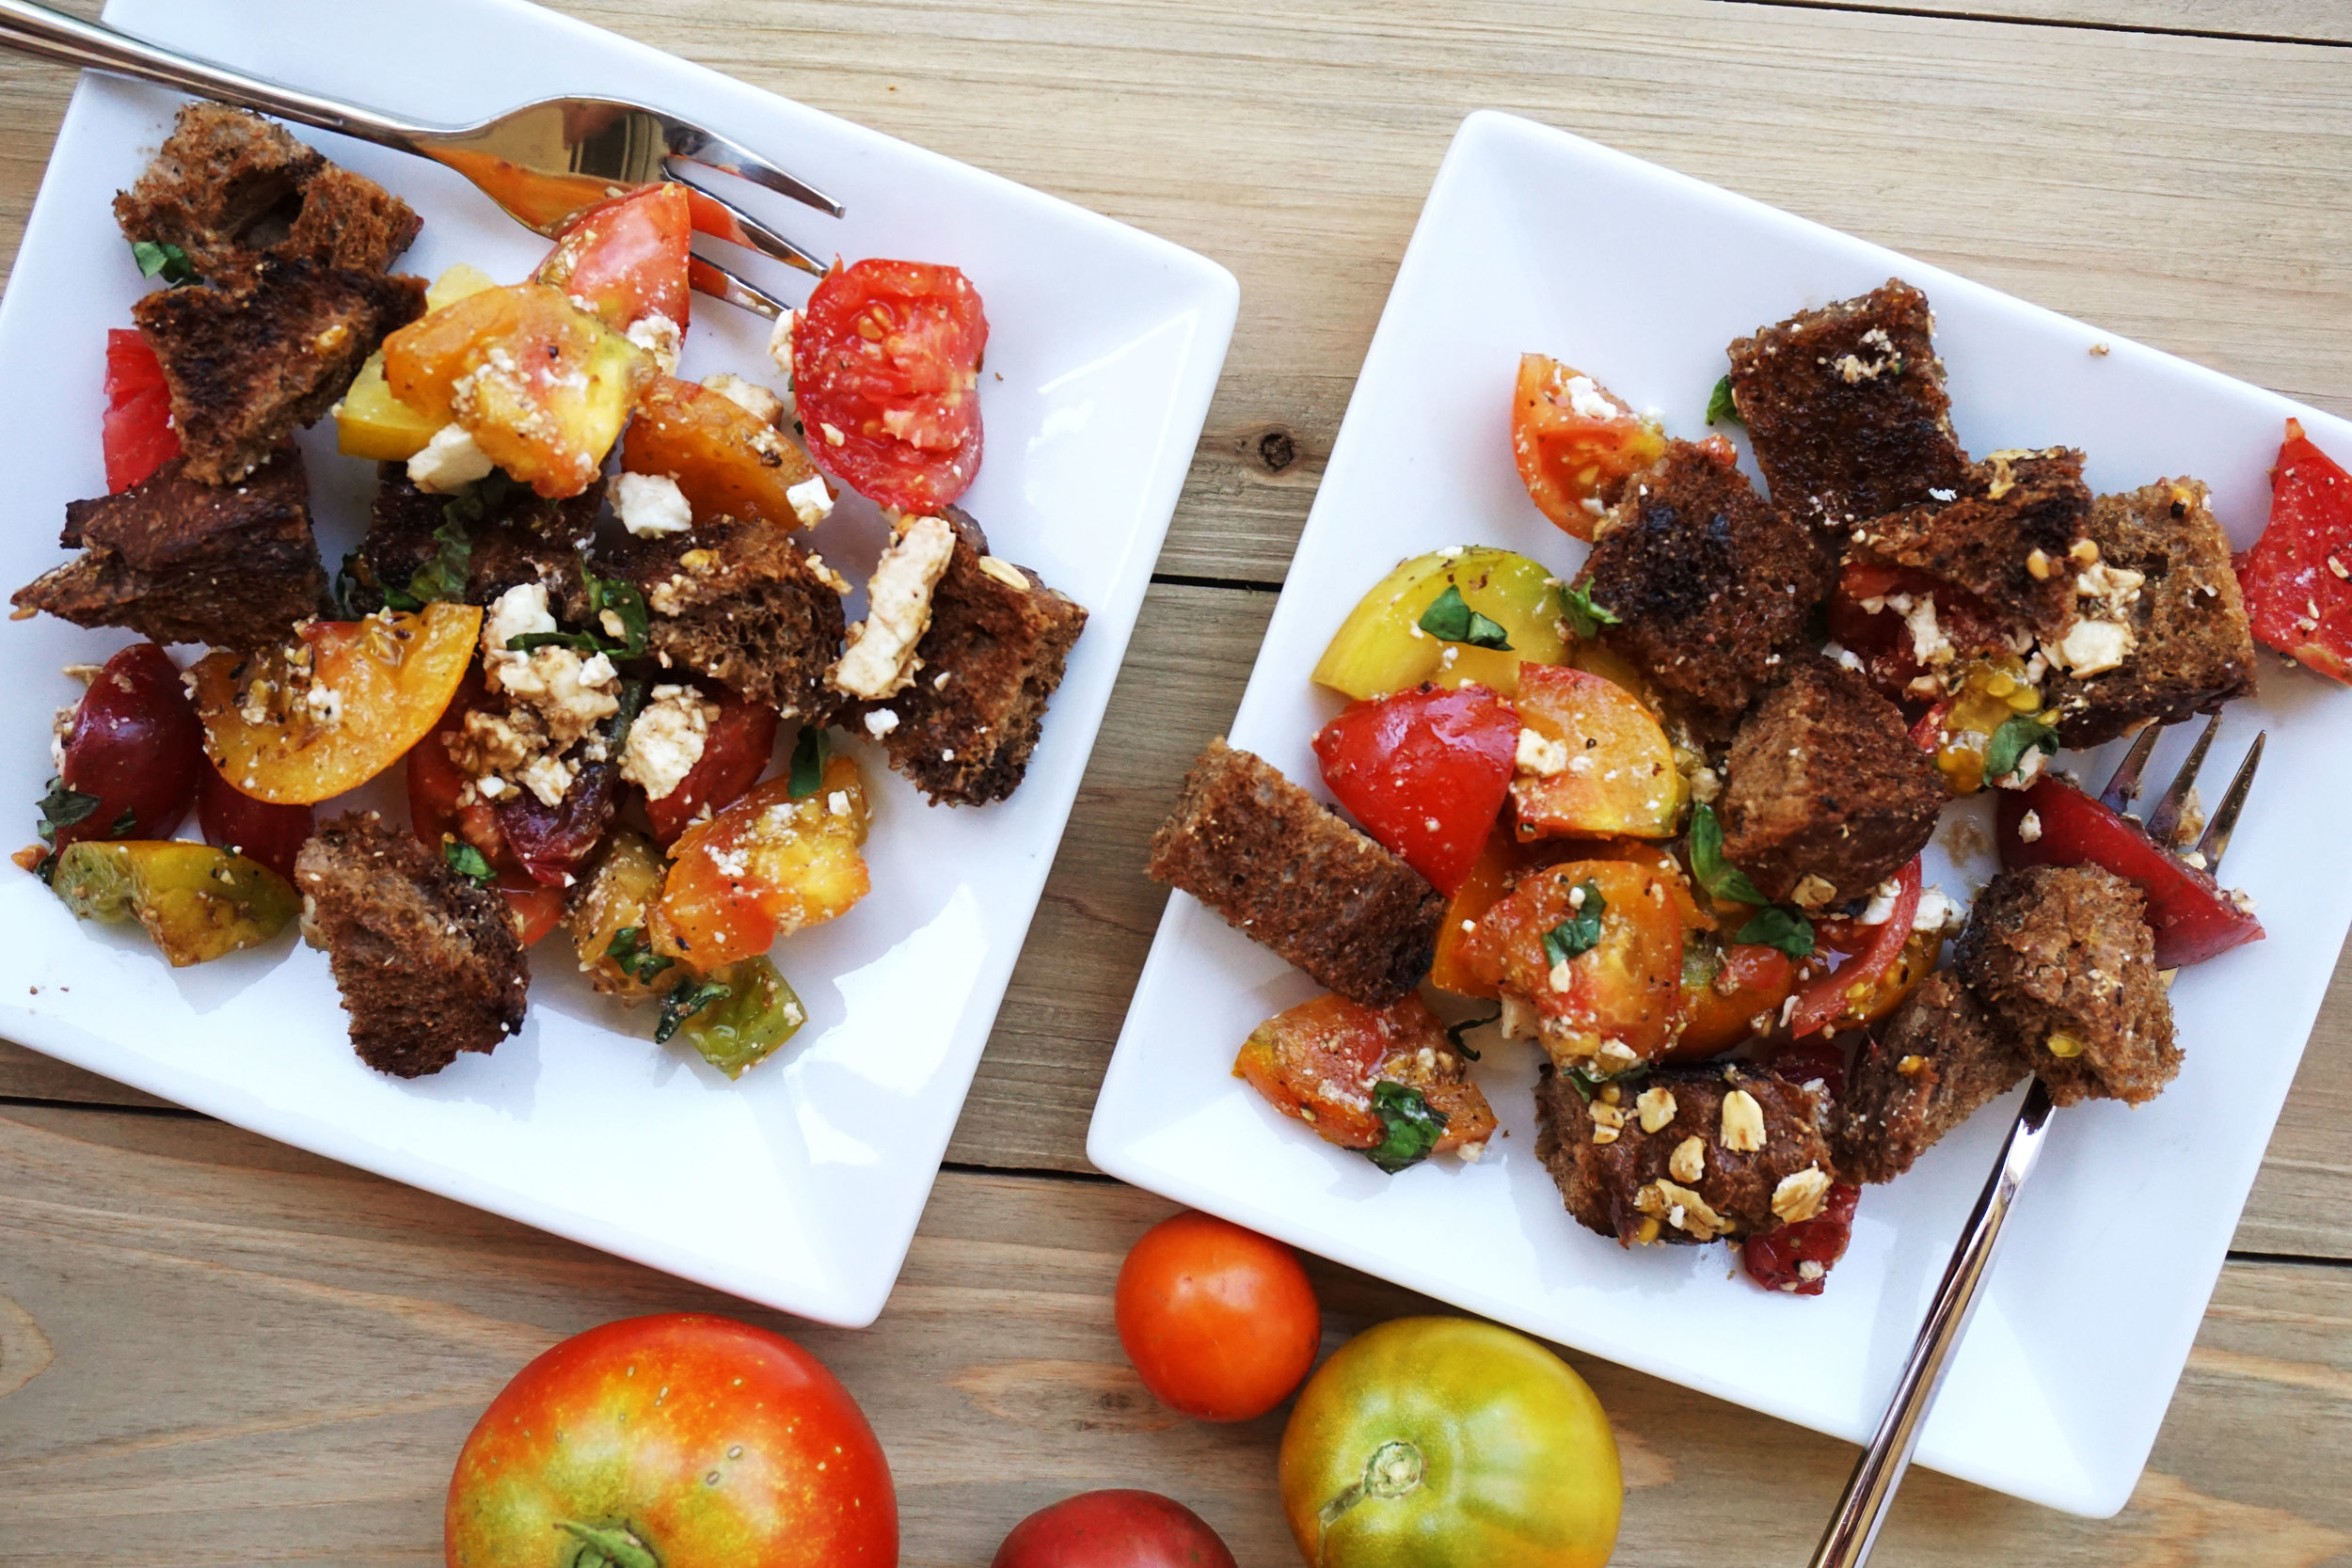 Simple Summer Panzanella Salad